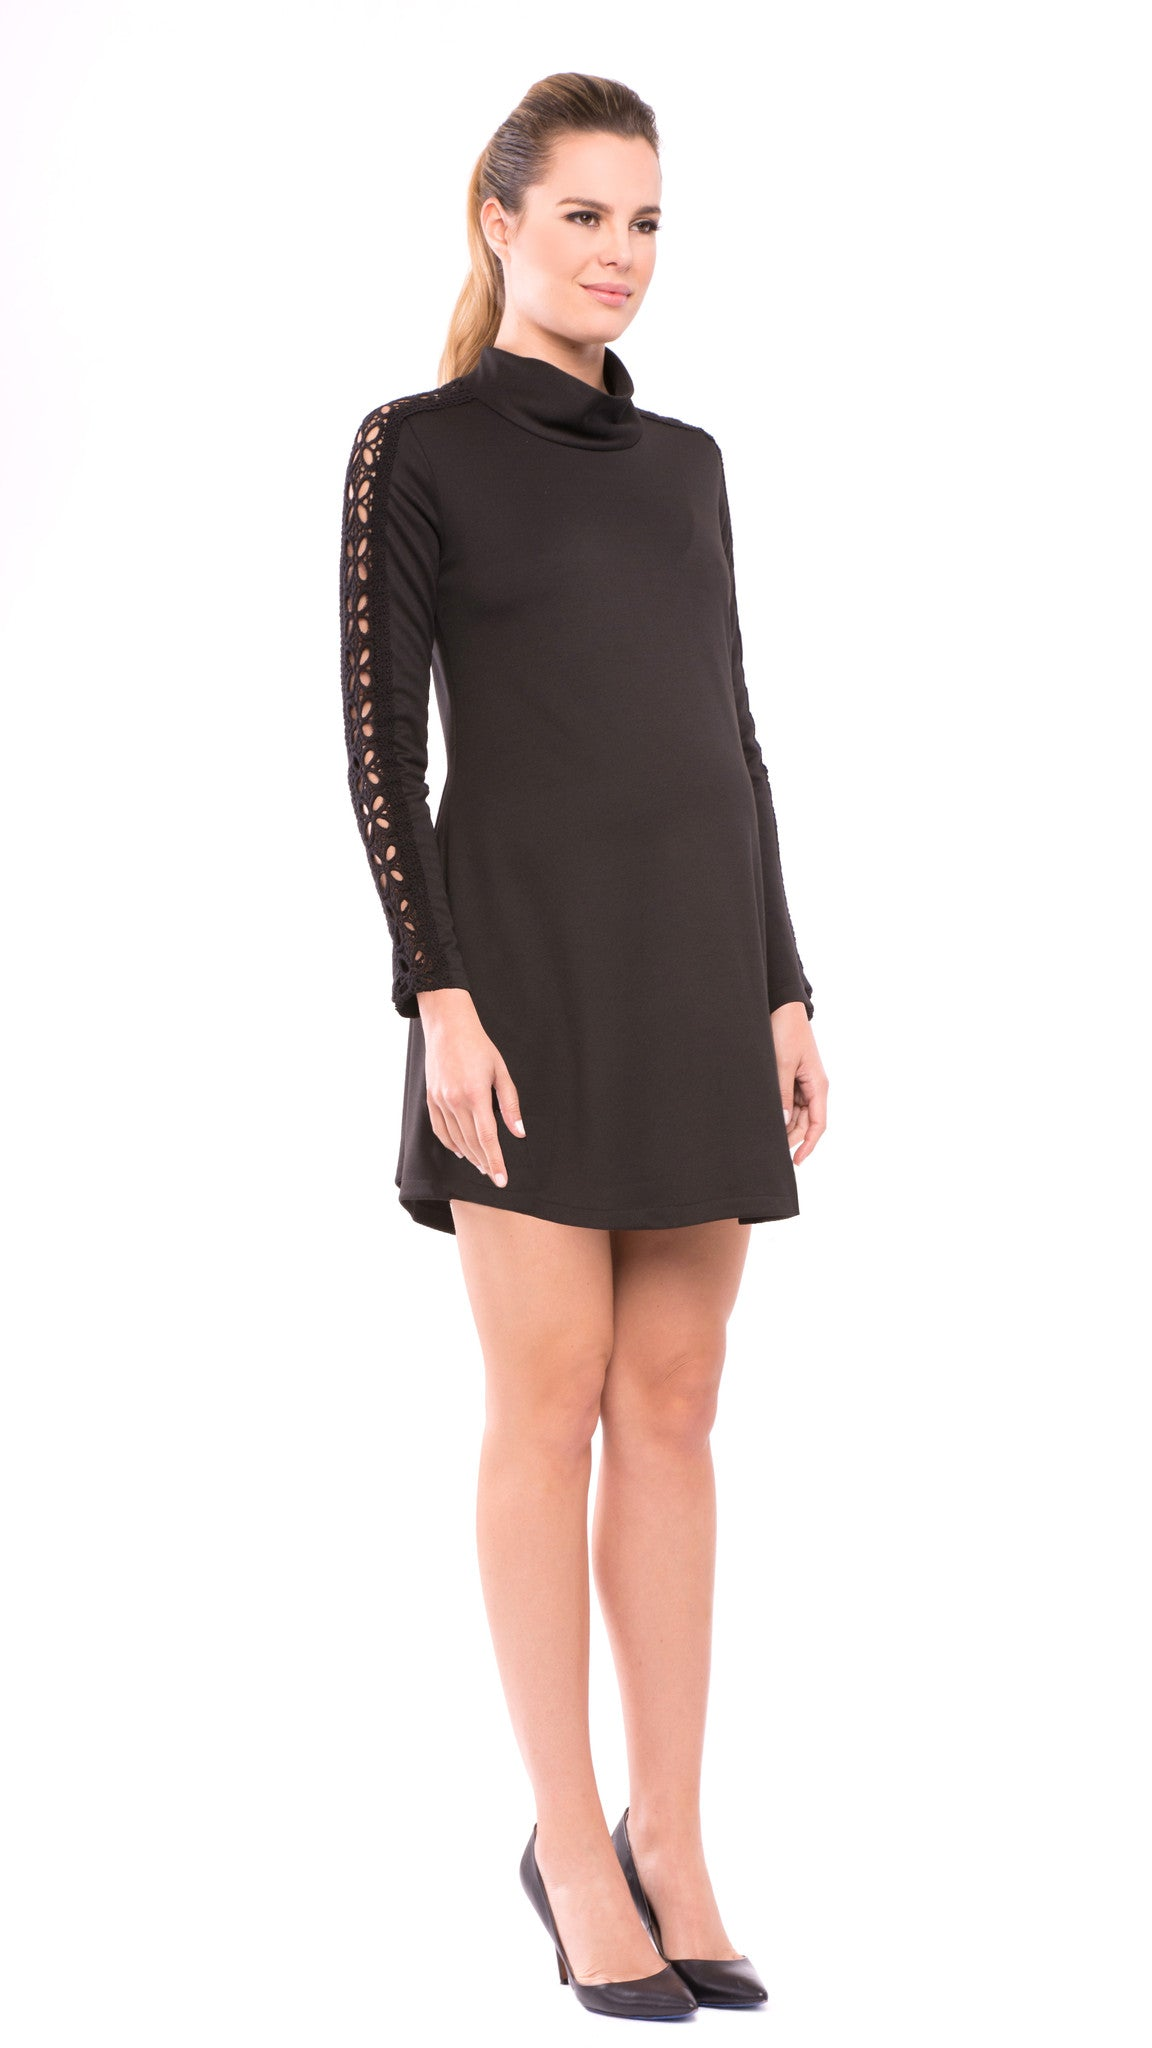 Caroline TurtleNeck Dress